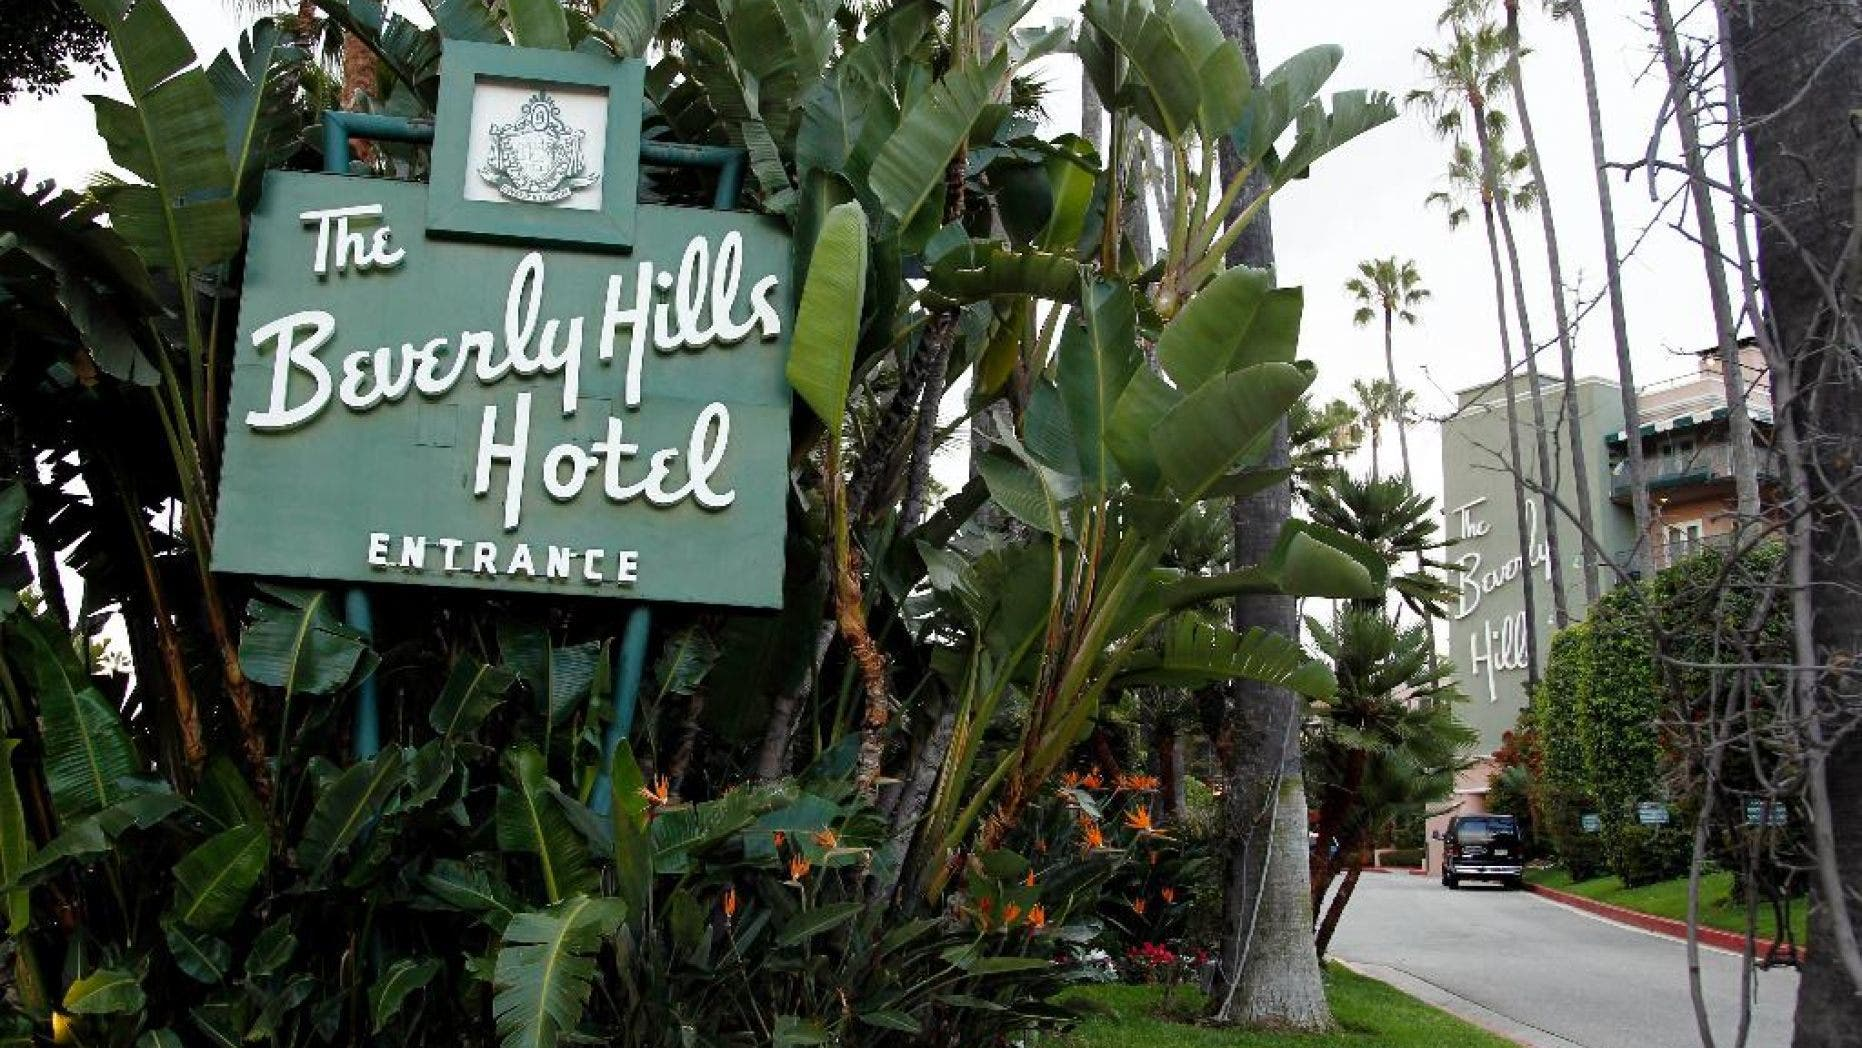 The Beverly Hills Hotel and the Hotel Bel-Air are part of the Dorchester Collection, owned by a wing of the Brunei government referred to as the Brunei Investment Agency. They owned nine high-end hotels worldwide.